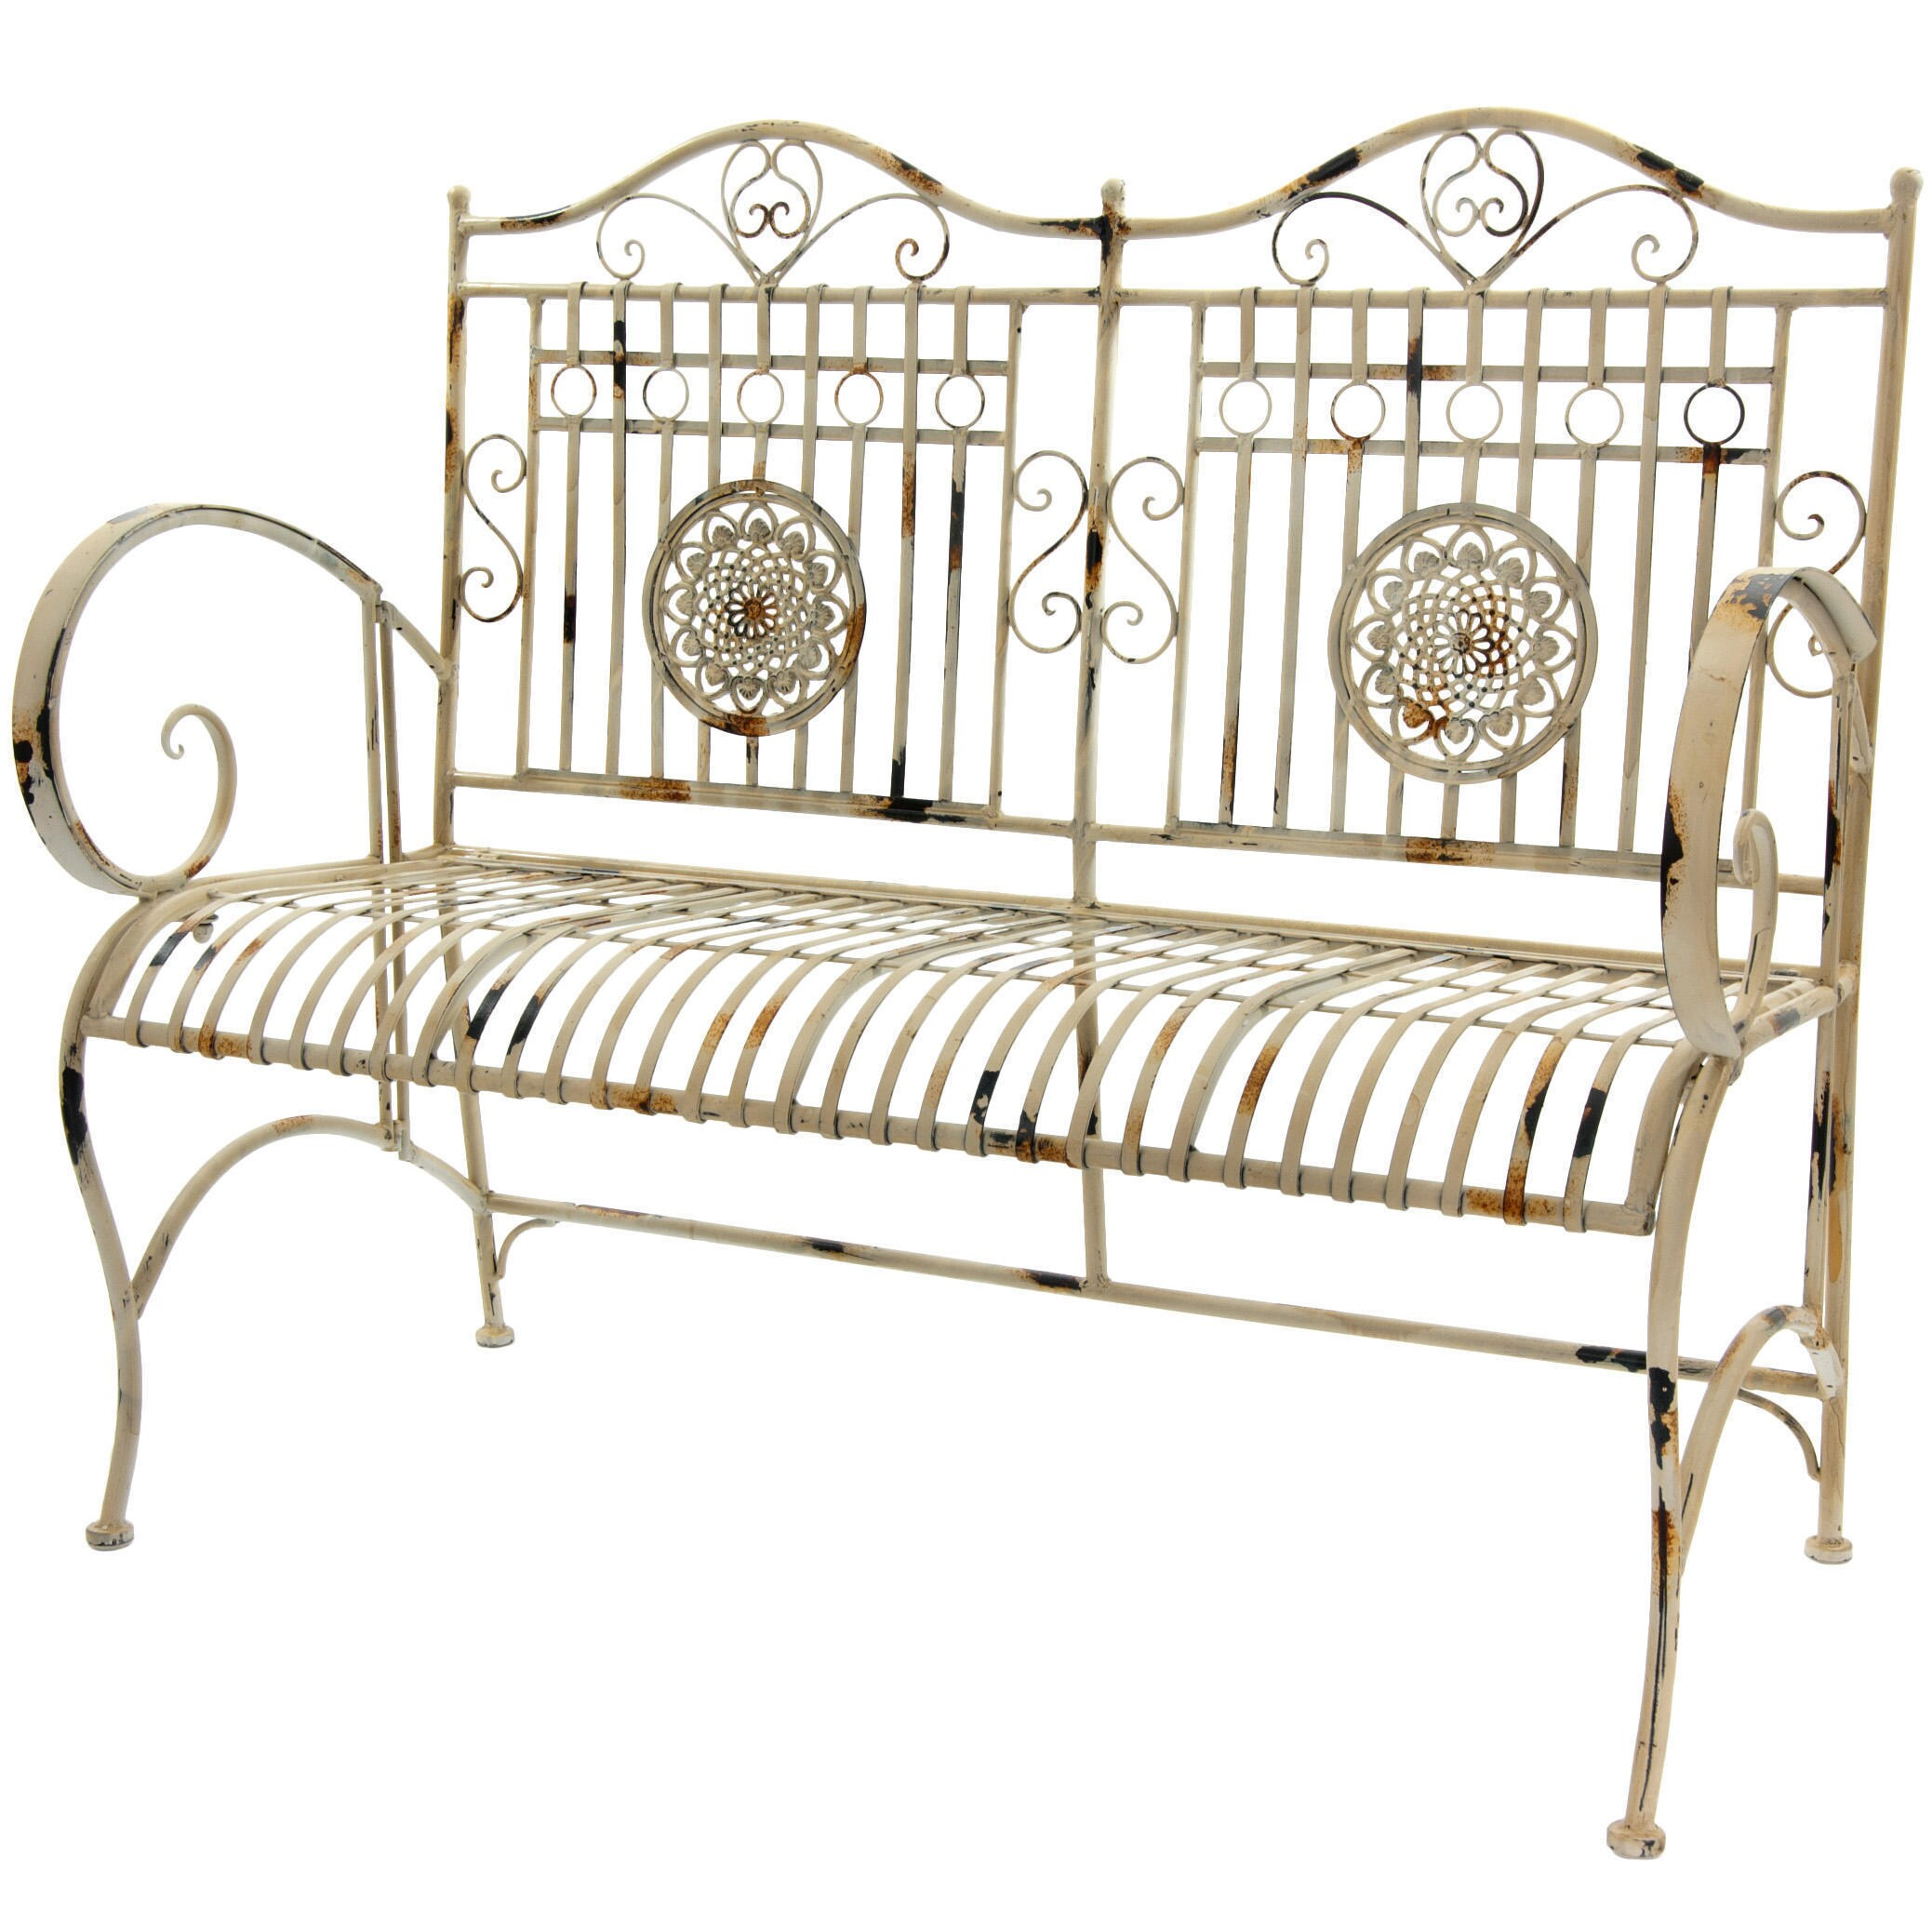 store rustic metal bench high garden back index